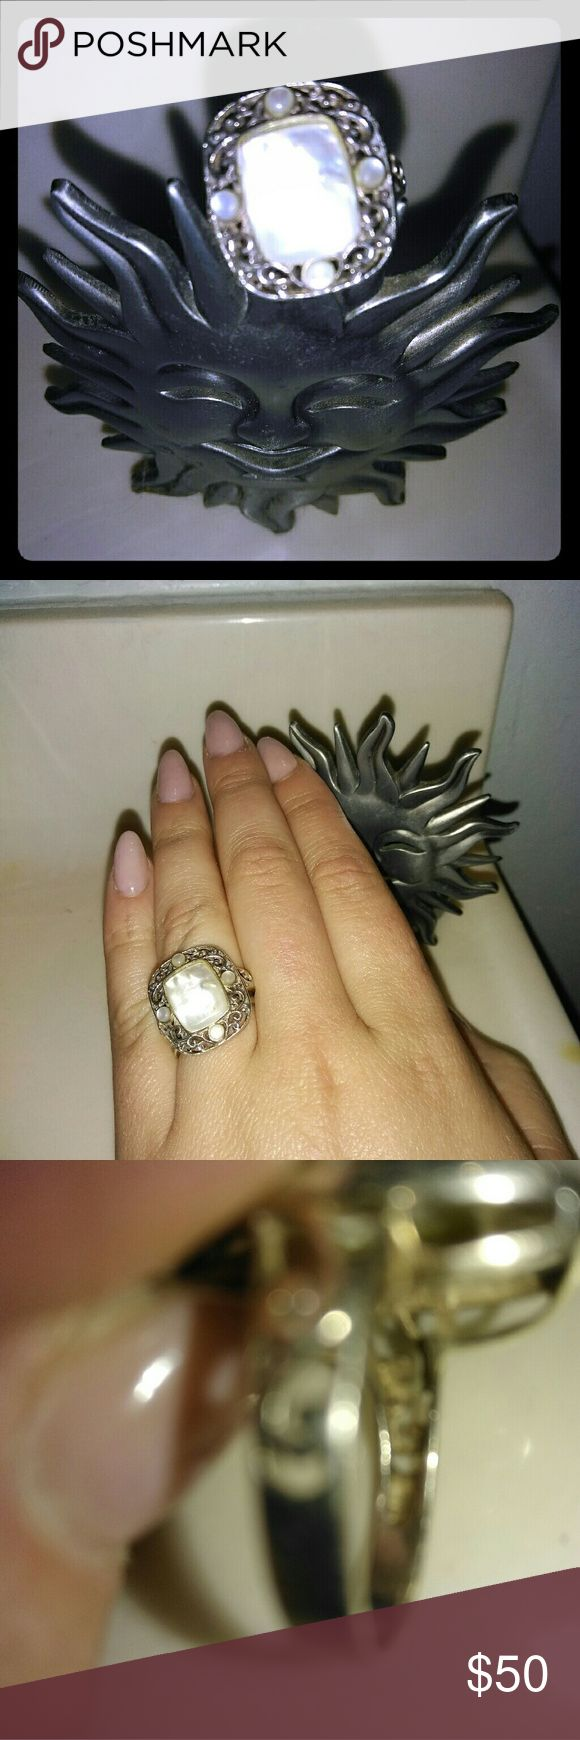 925 Sterling silver mother of pearl ring Beautiful. Don't wear much anymore. In excellent condition. Price is firm. Stamped 925 Jewelry Rings